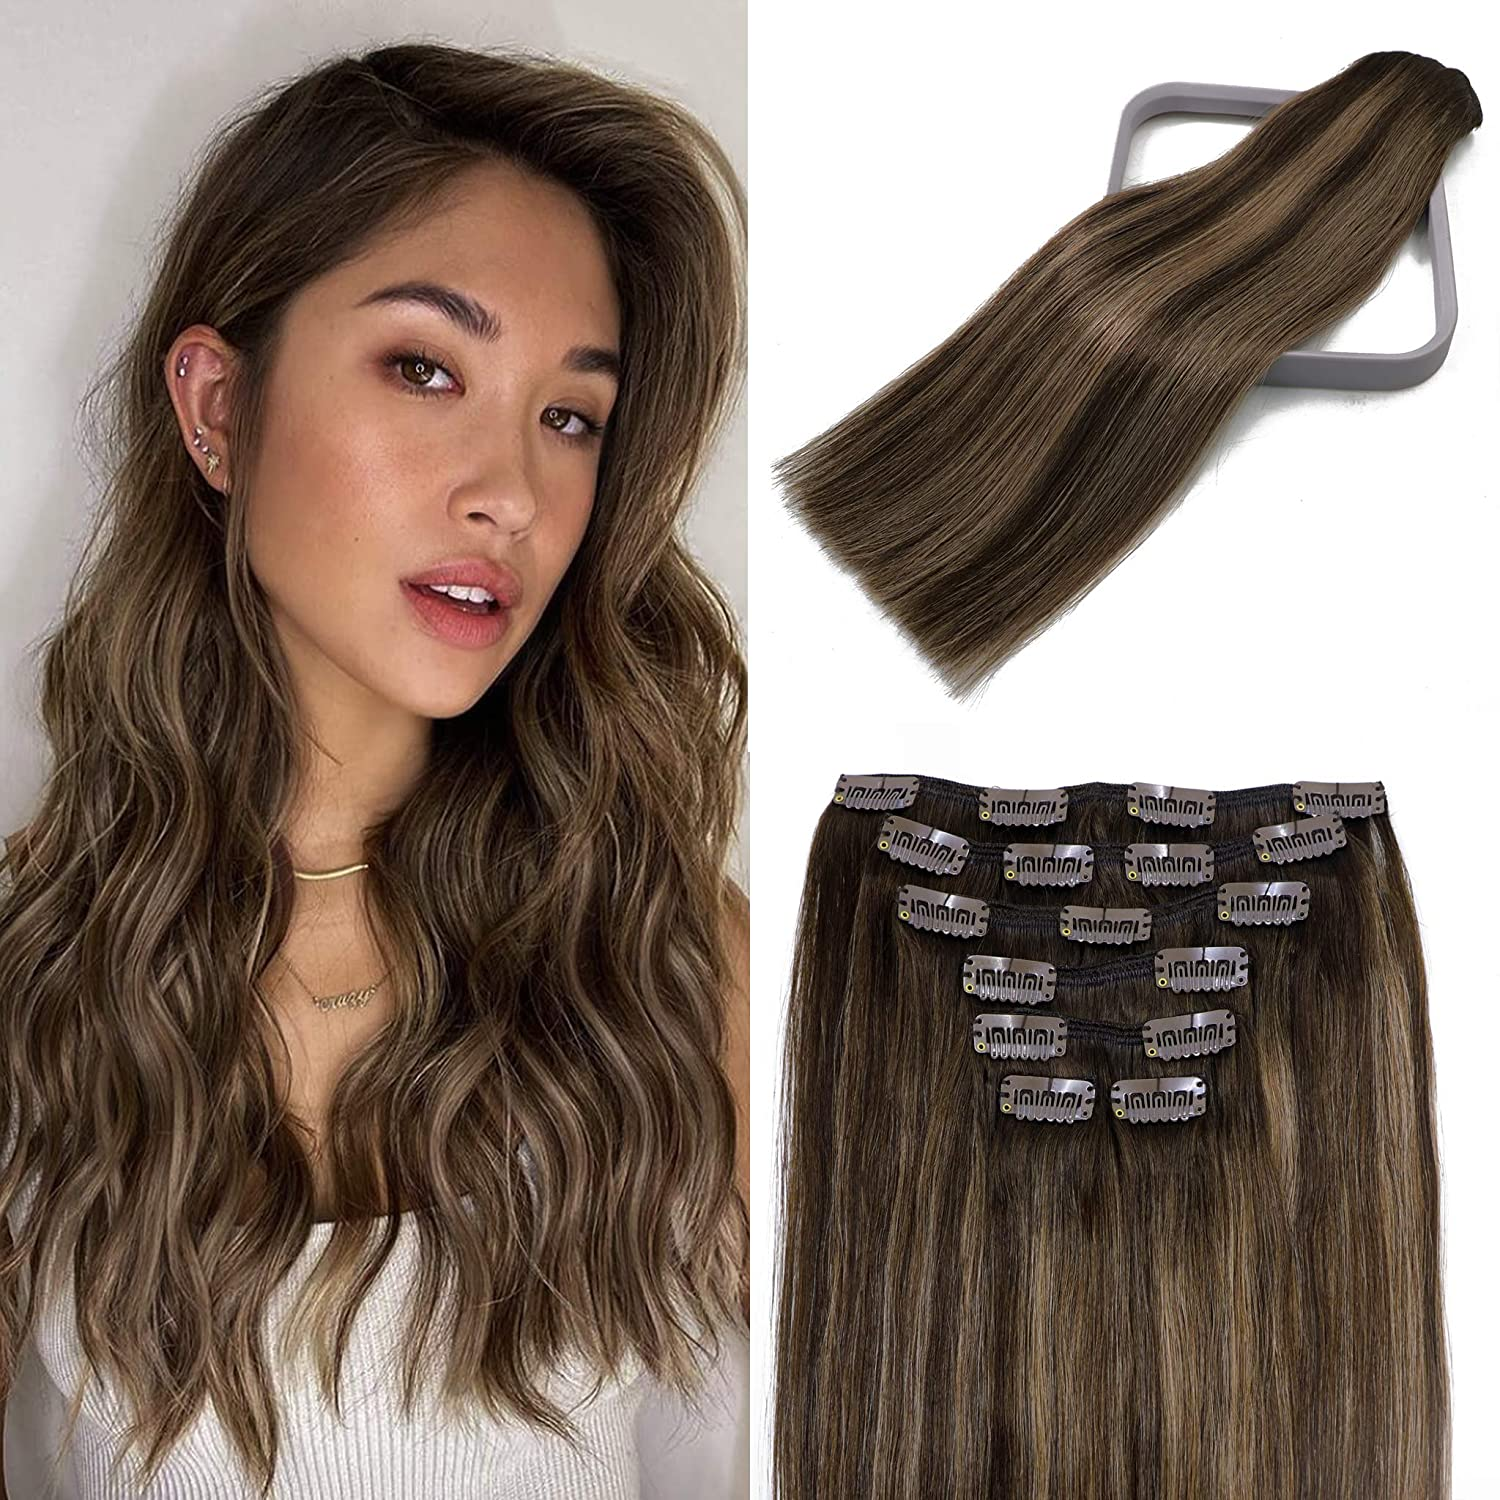 Clip In Hair Extensions Human to Online limited product Balayage Dark Brown Bargain Chestn